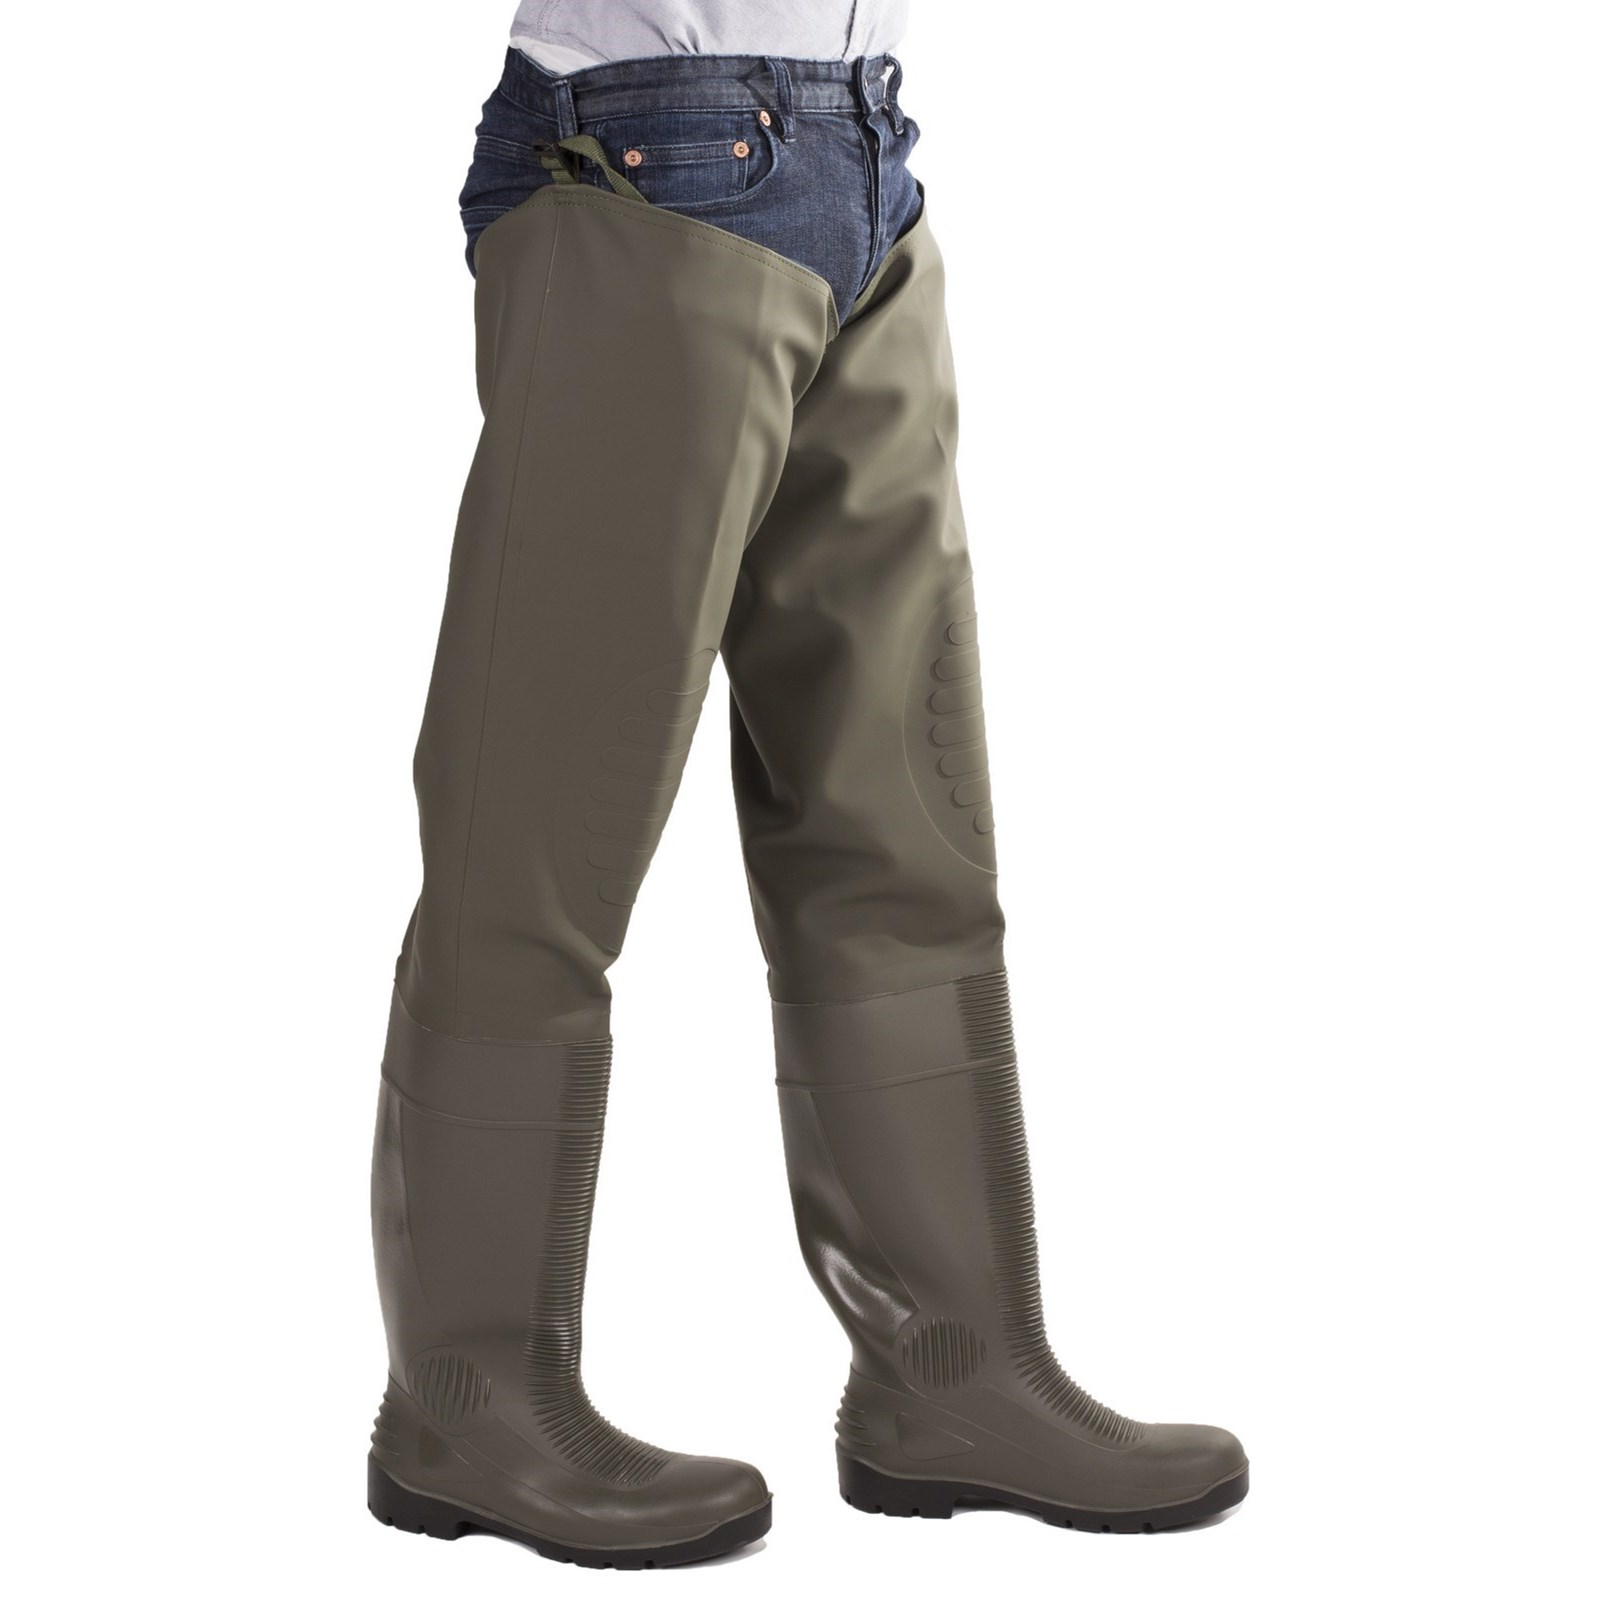 Long Wader Comfortable Safety Thigh Amblers Dry Green Forth qf4nzR